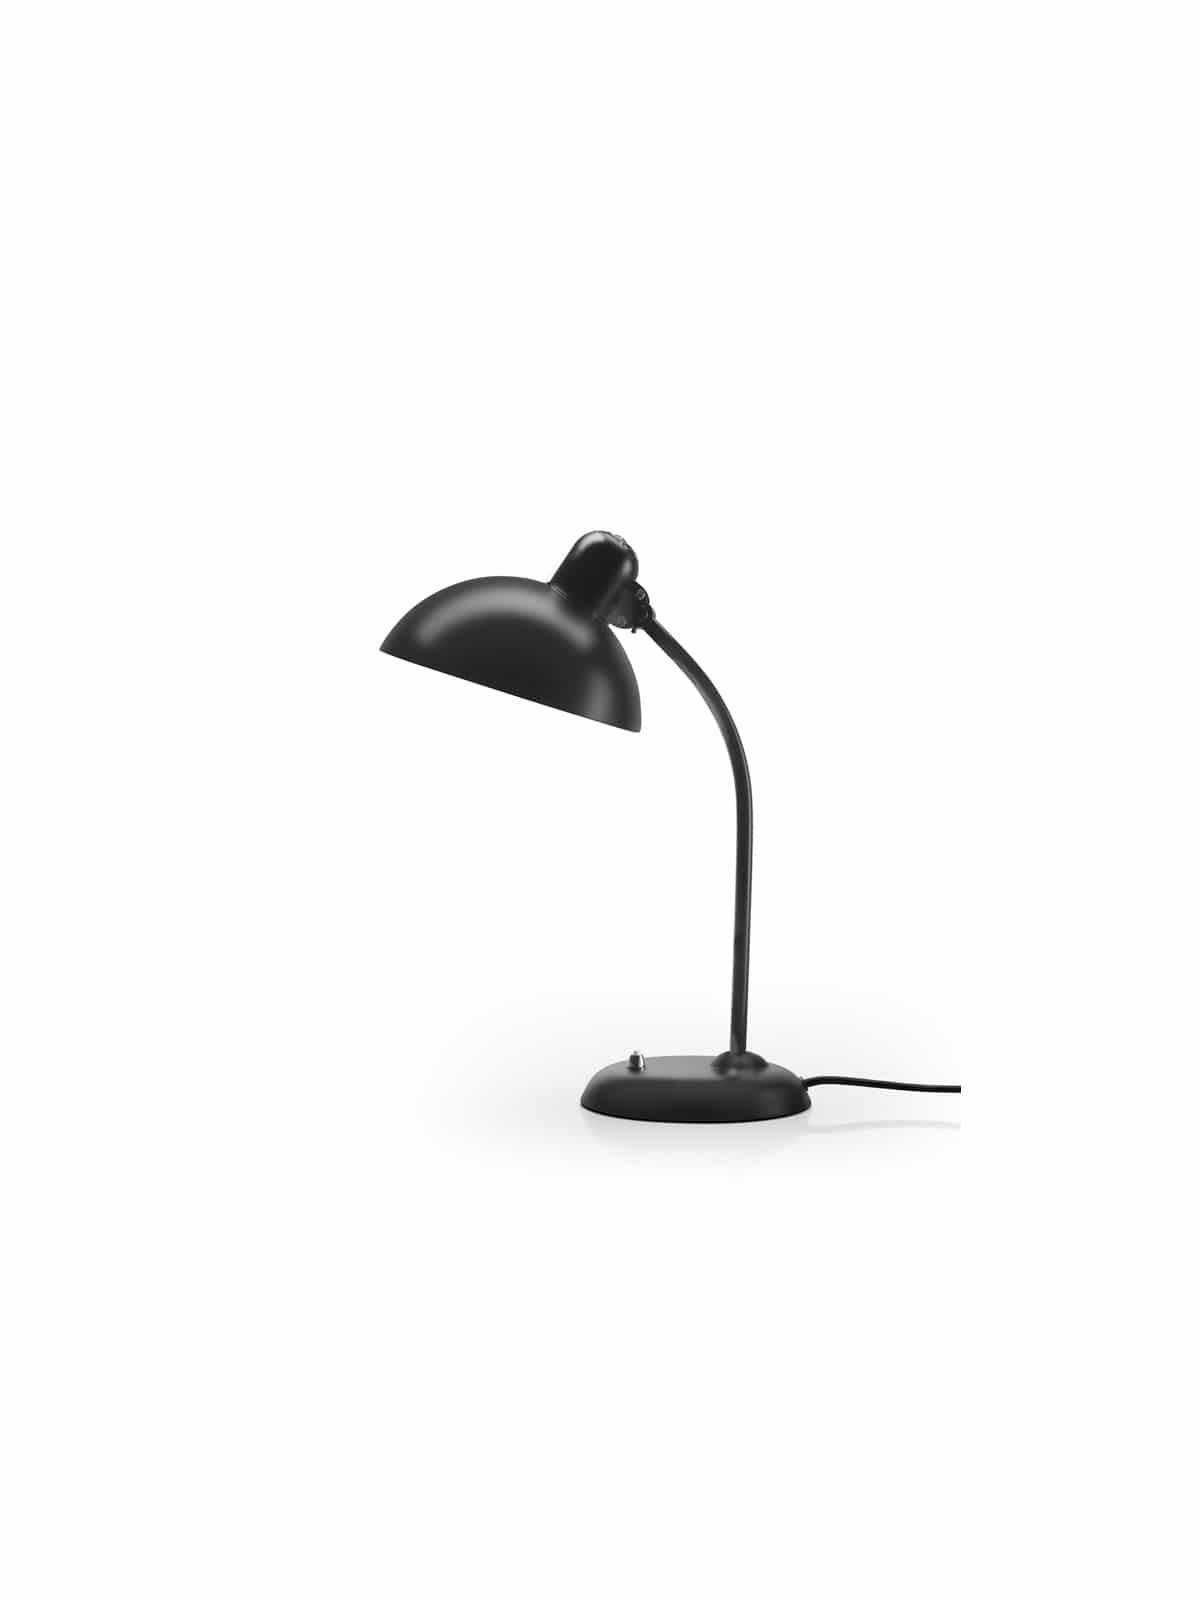 Lampe Kaiser ideal Table Tischleuchte